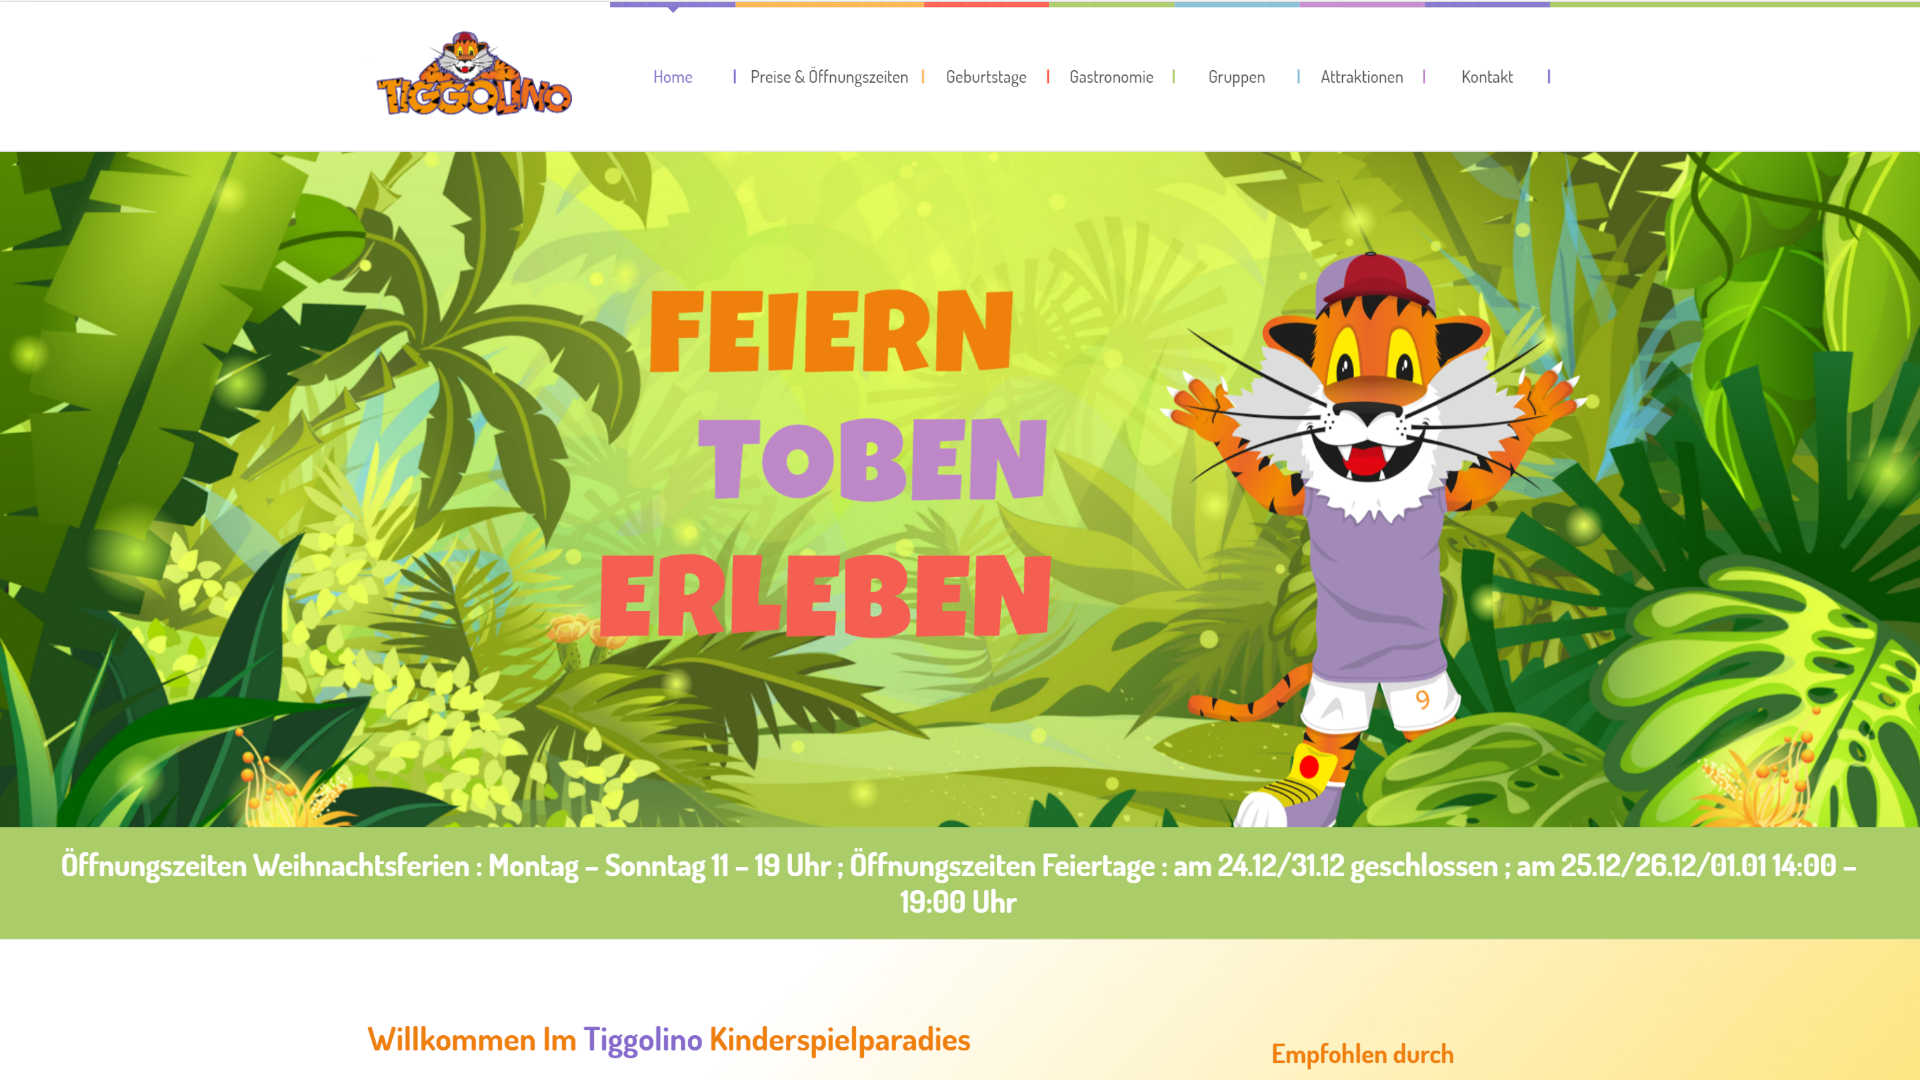 Screenshot: Homepage Tiggolino Kinderspielparadies